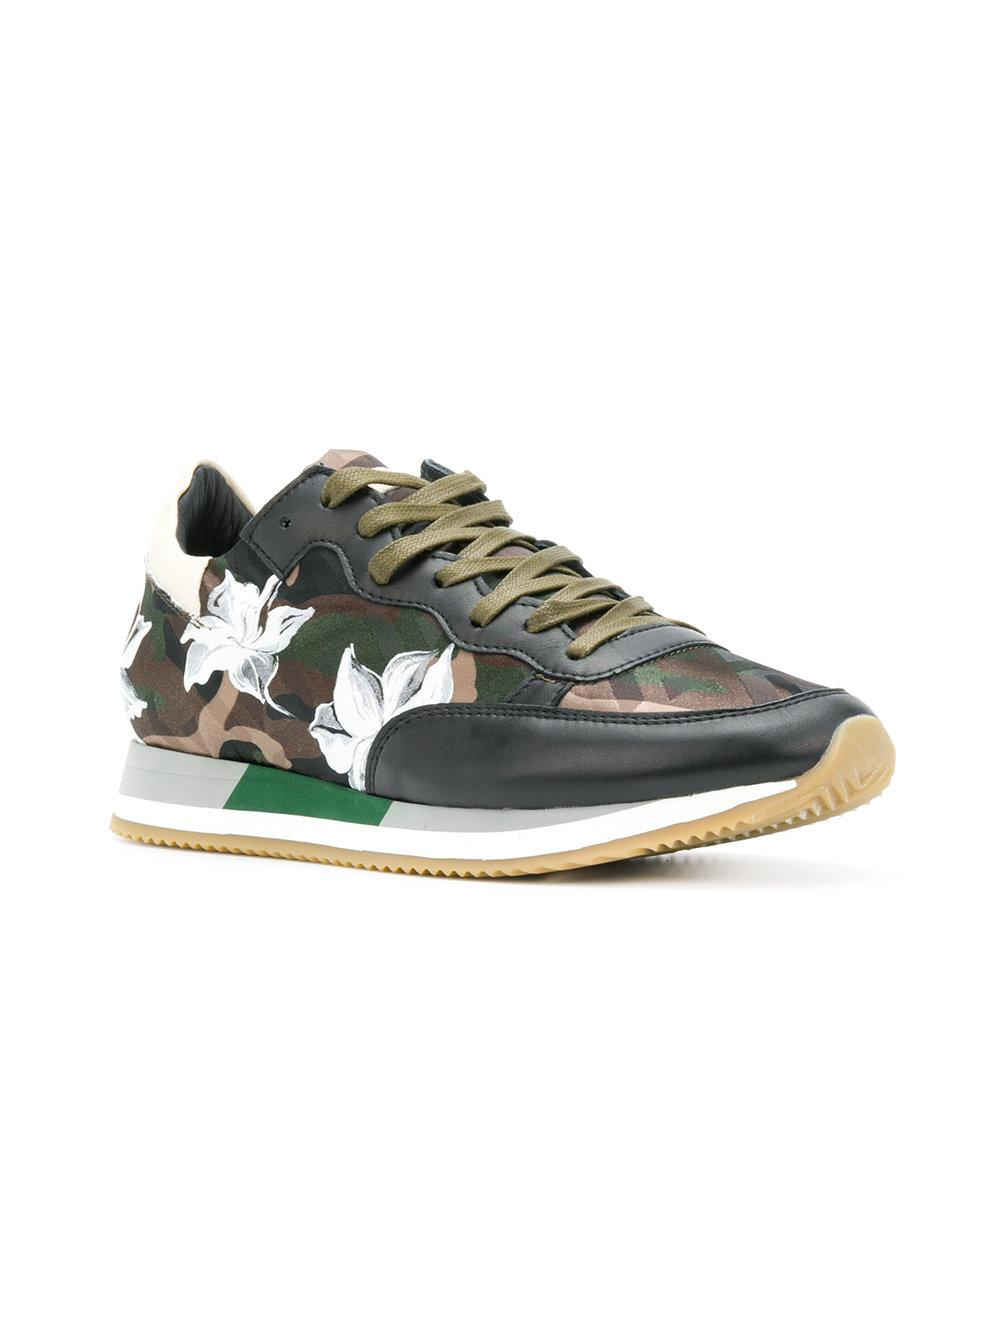 websites for sale Philippe Model floral camouflage sneakers clearance find great cheap nicekicks discount low price q0I7CVRcFj